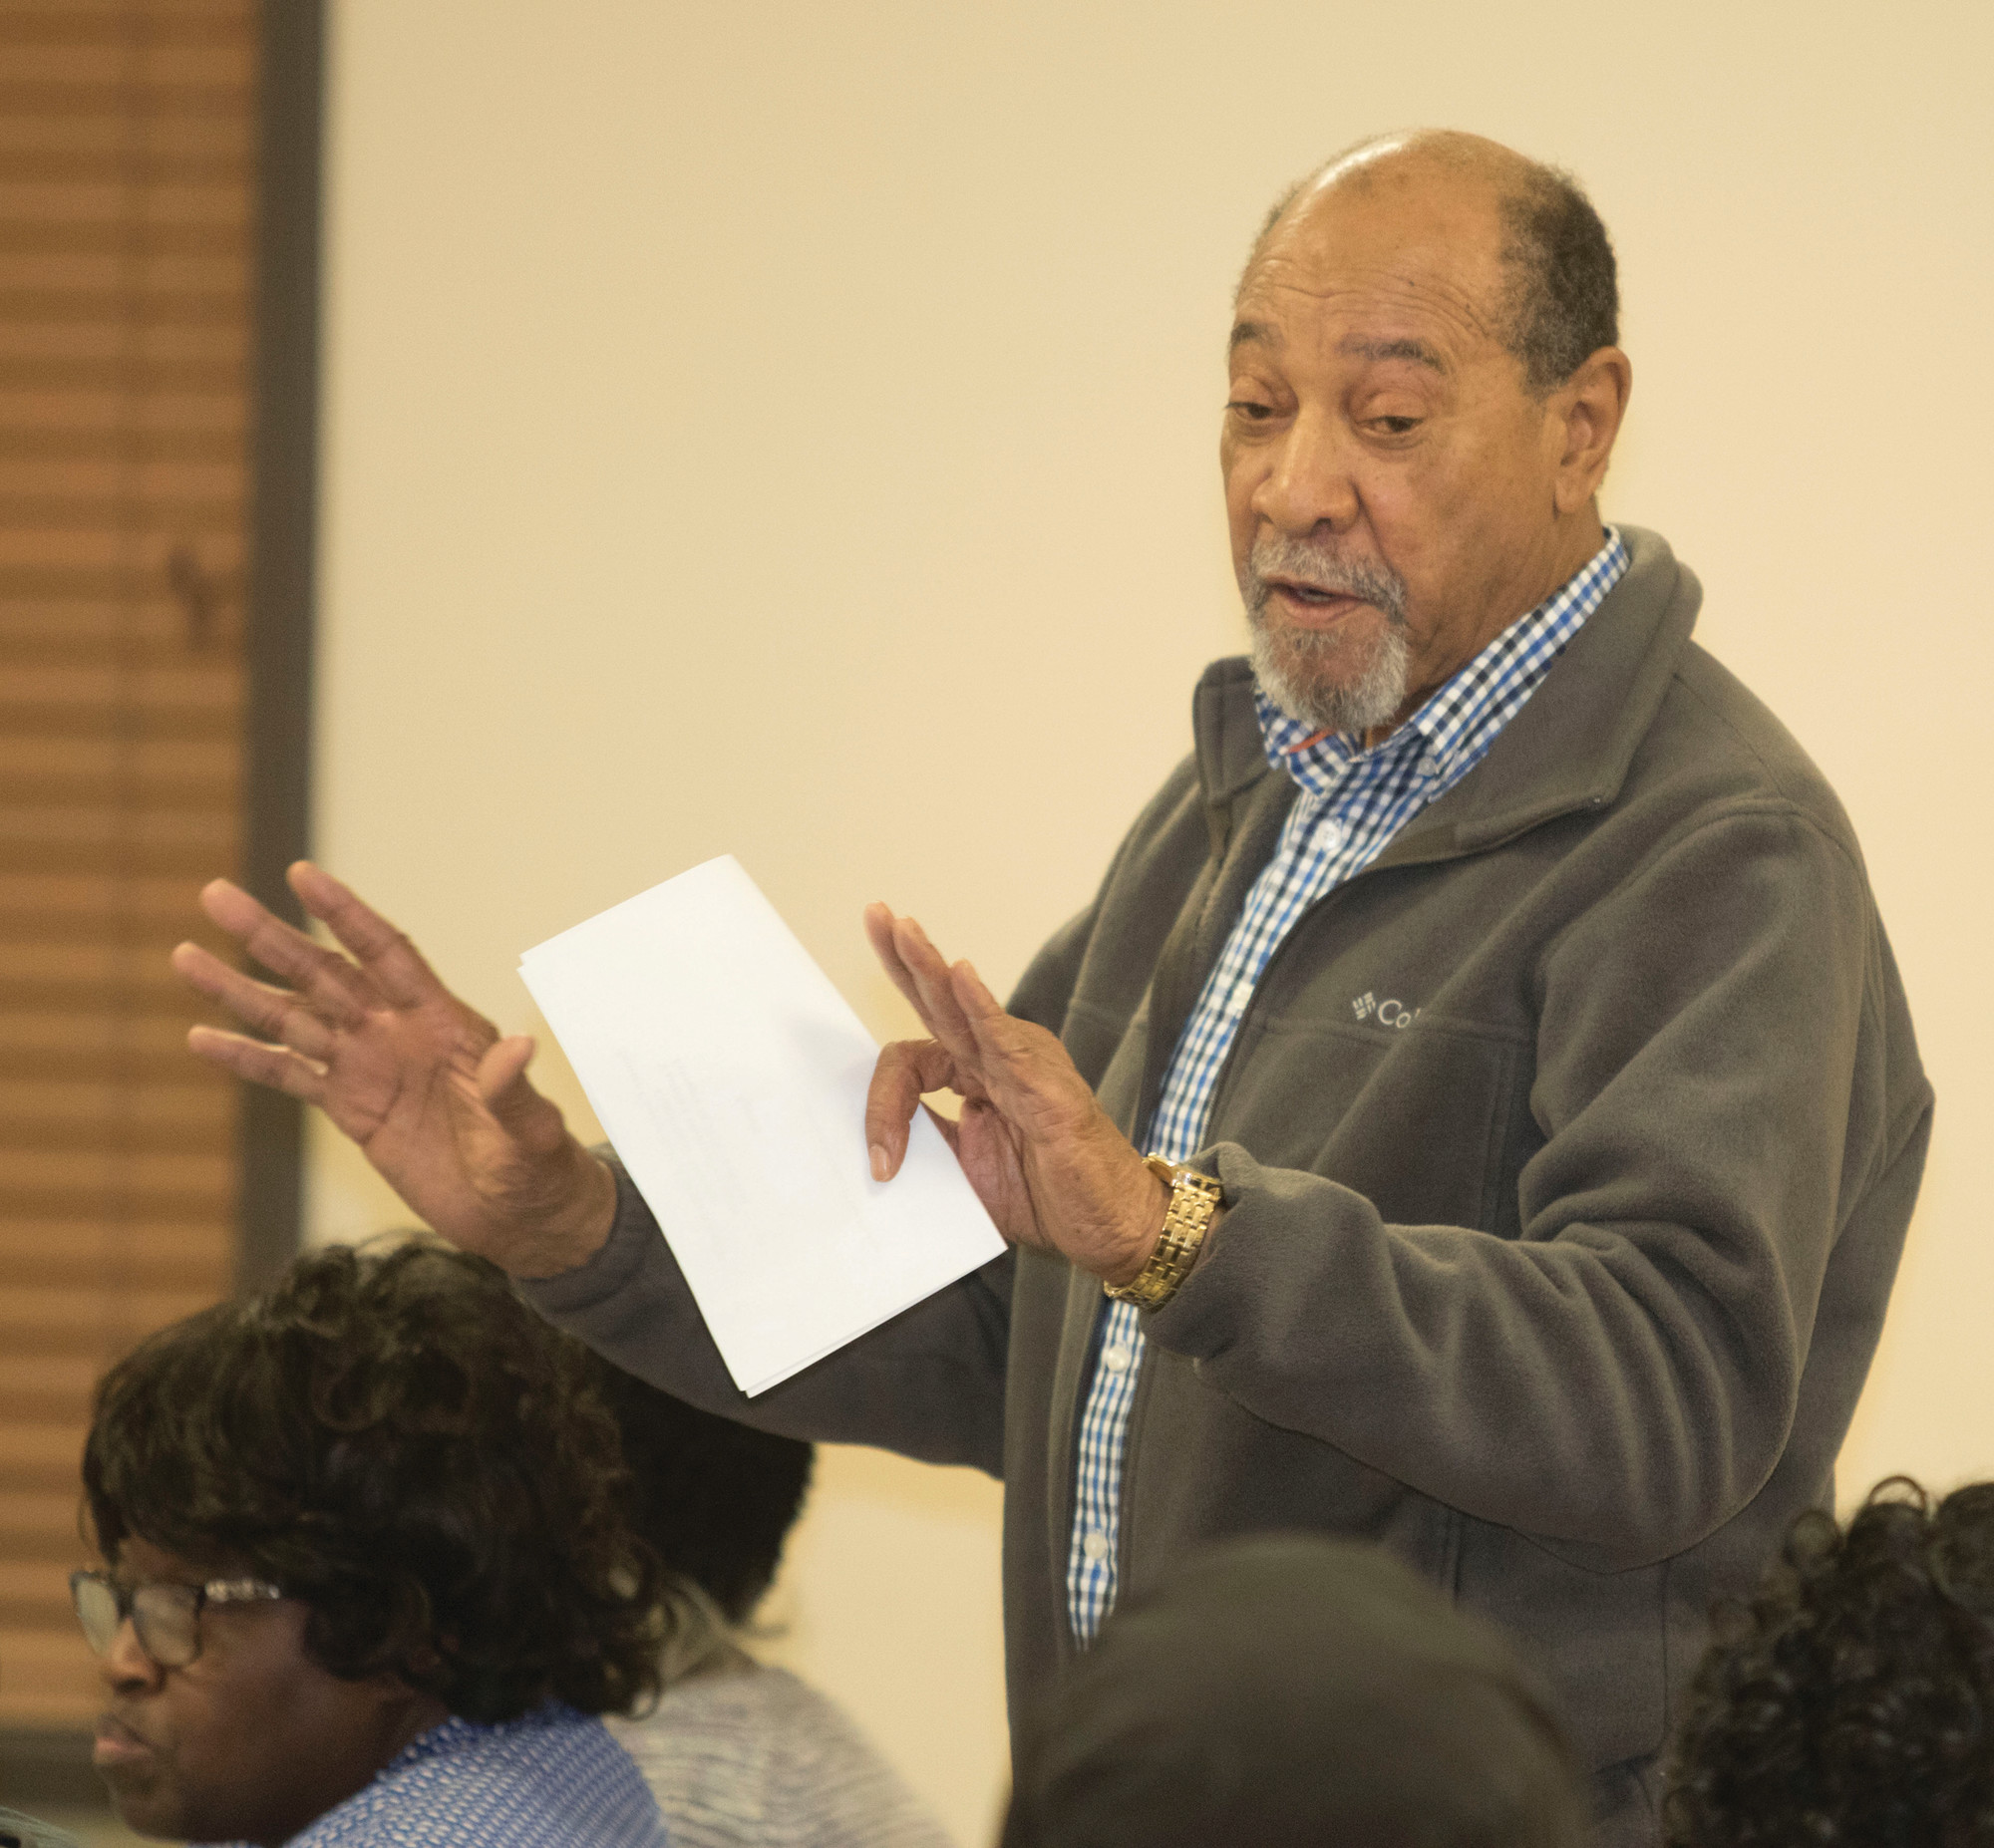 Sumter resident Billy Shaw addresses the audience Tuesday during the NAACP community meeting at Eastern Community Center.